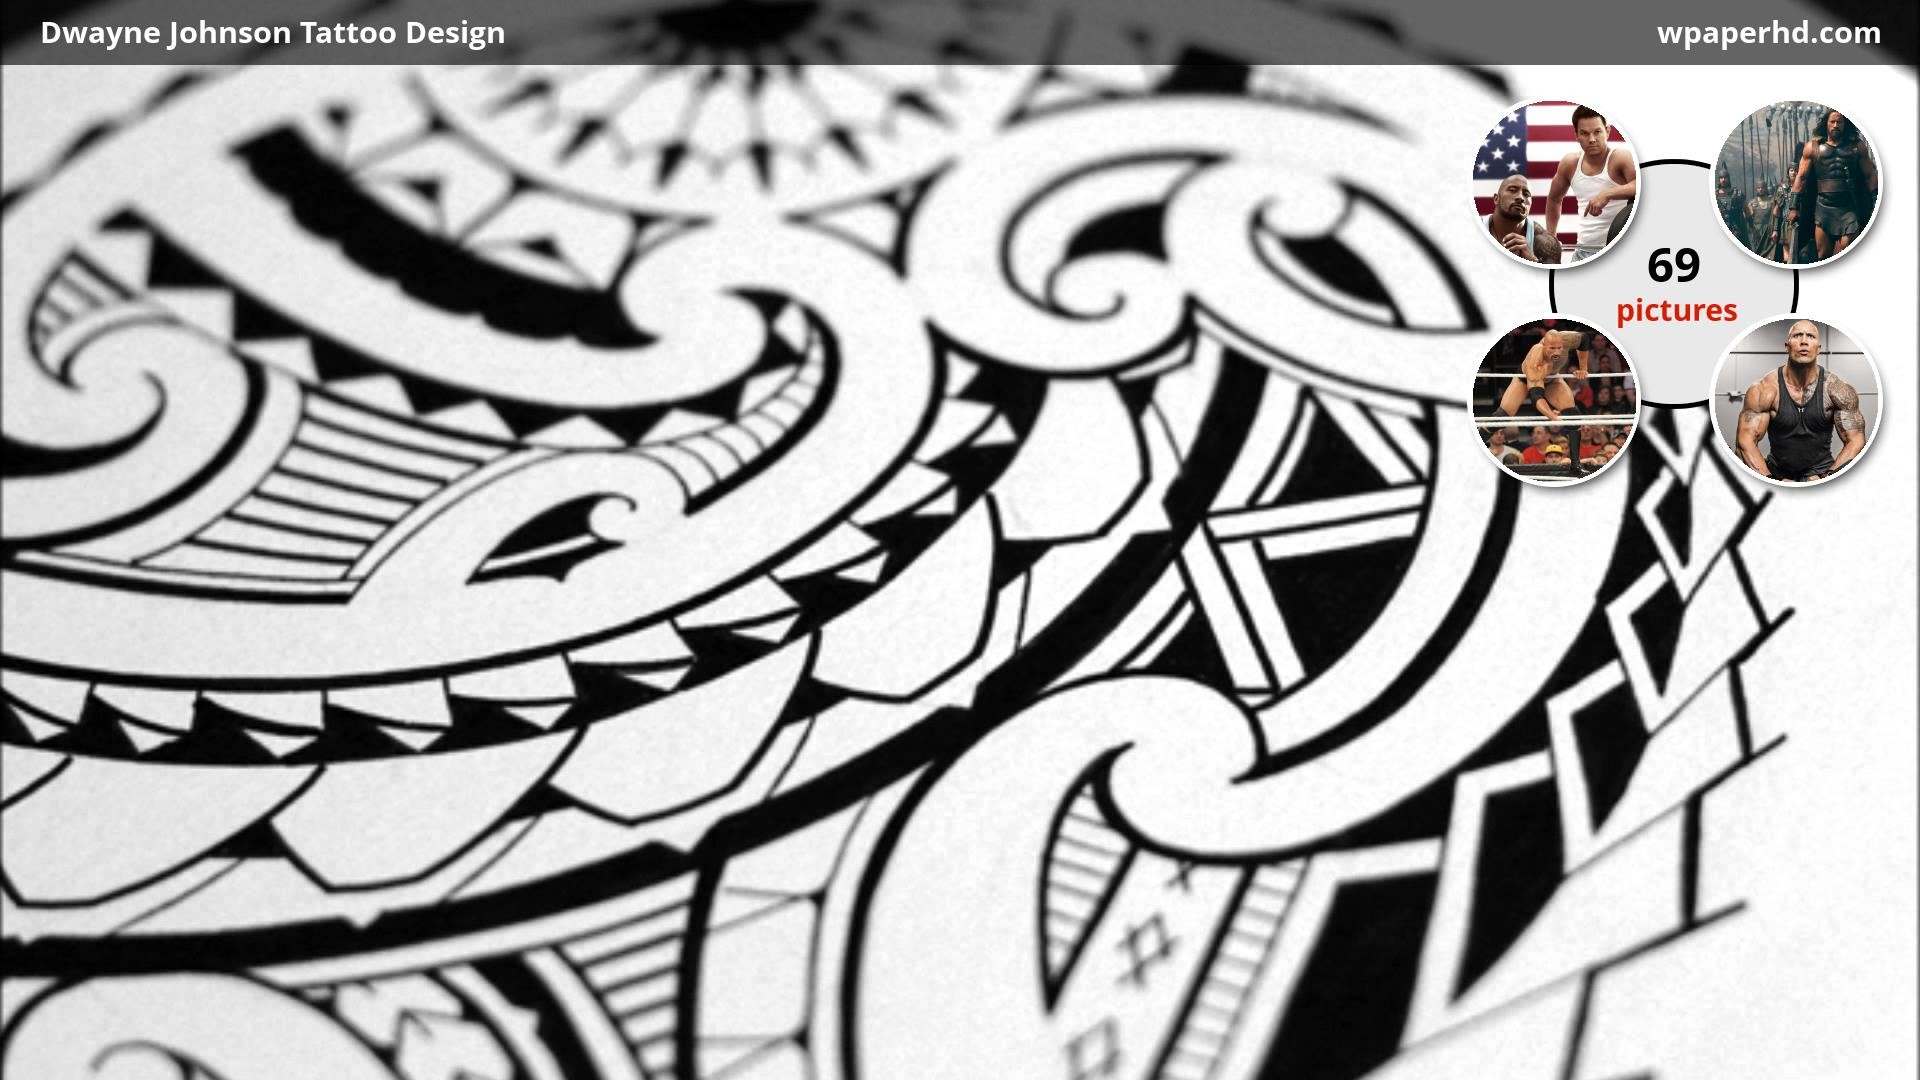 Res: 1920x1080, ... Tattoo Design wallpaper, where you can download this picture in  Original size and ...